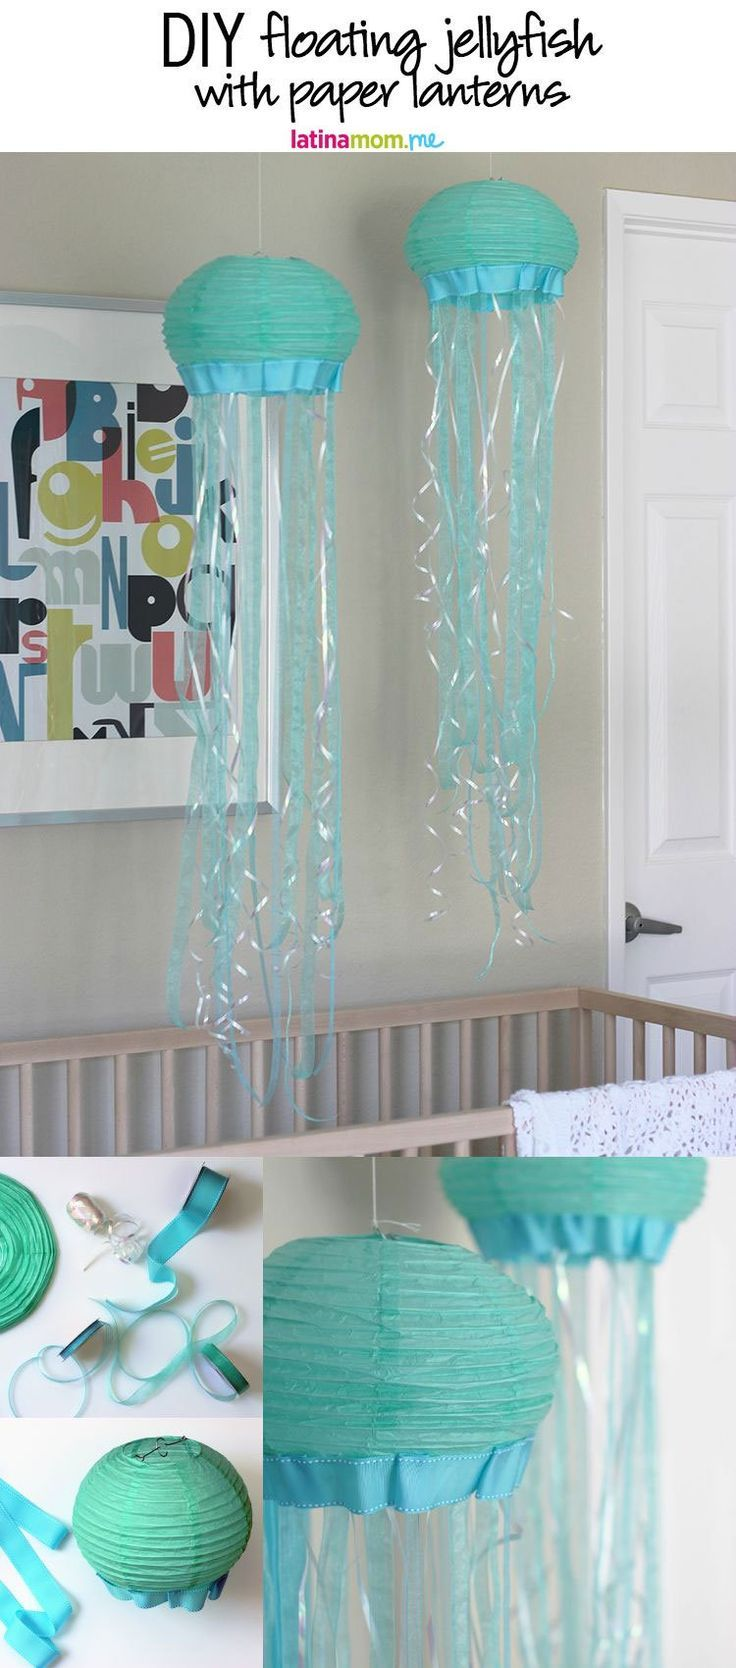 best 25+ diy birthday decorations ideas on pinterest | diy party